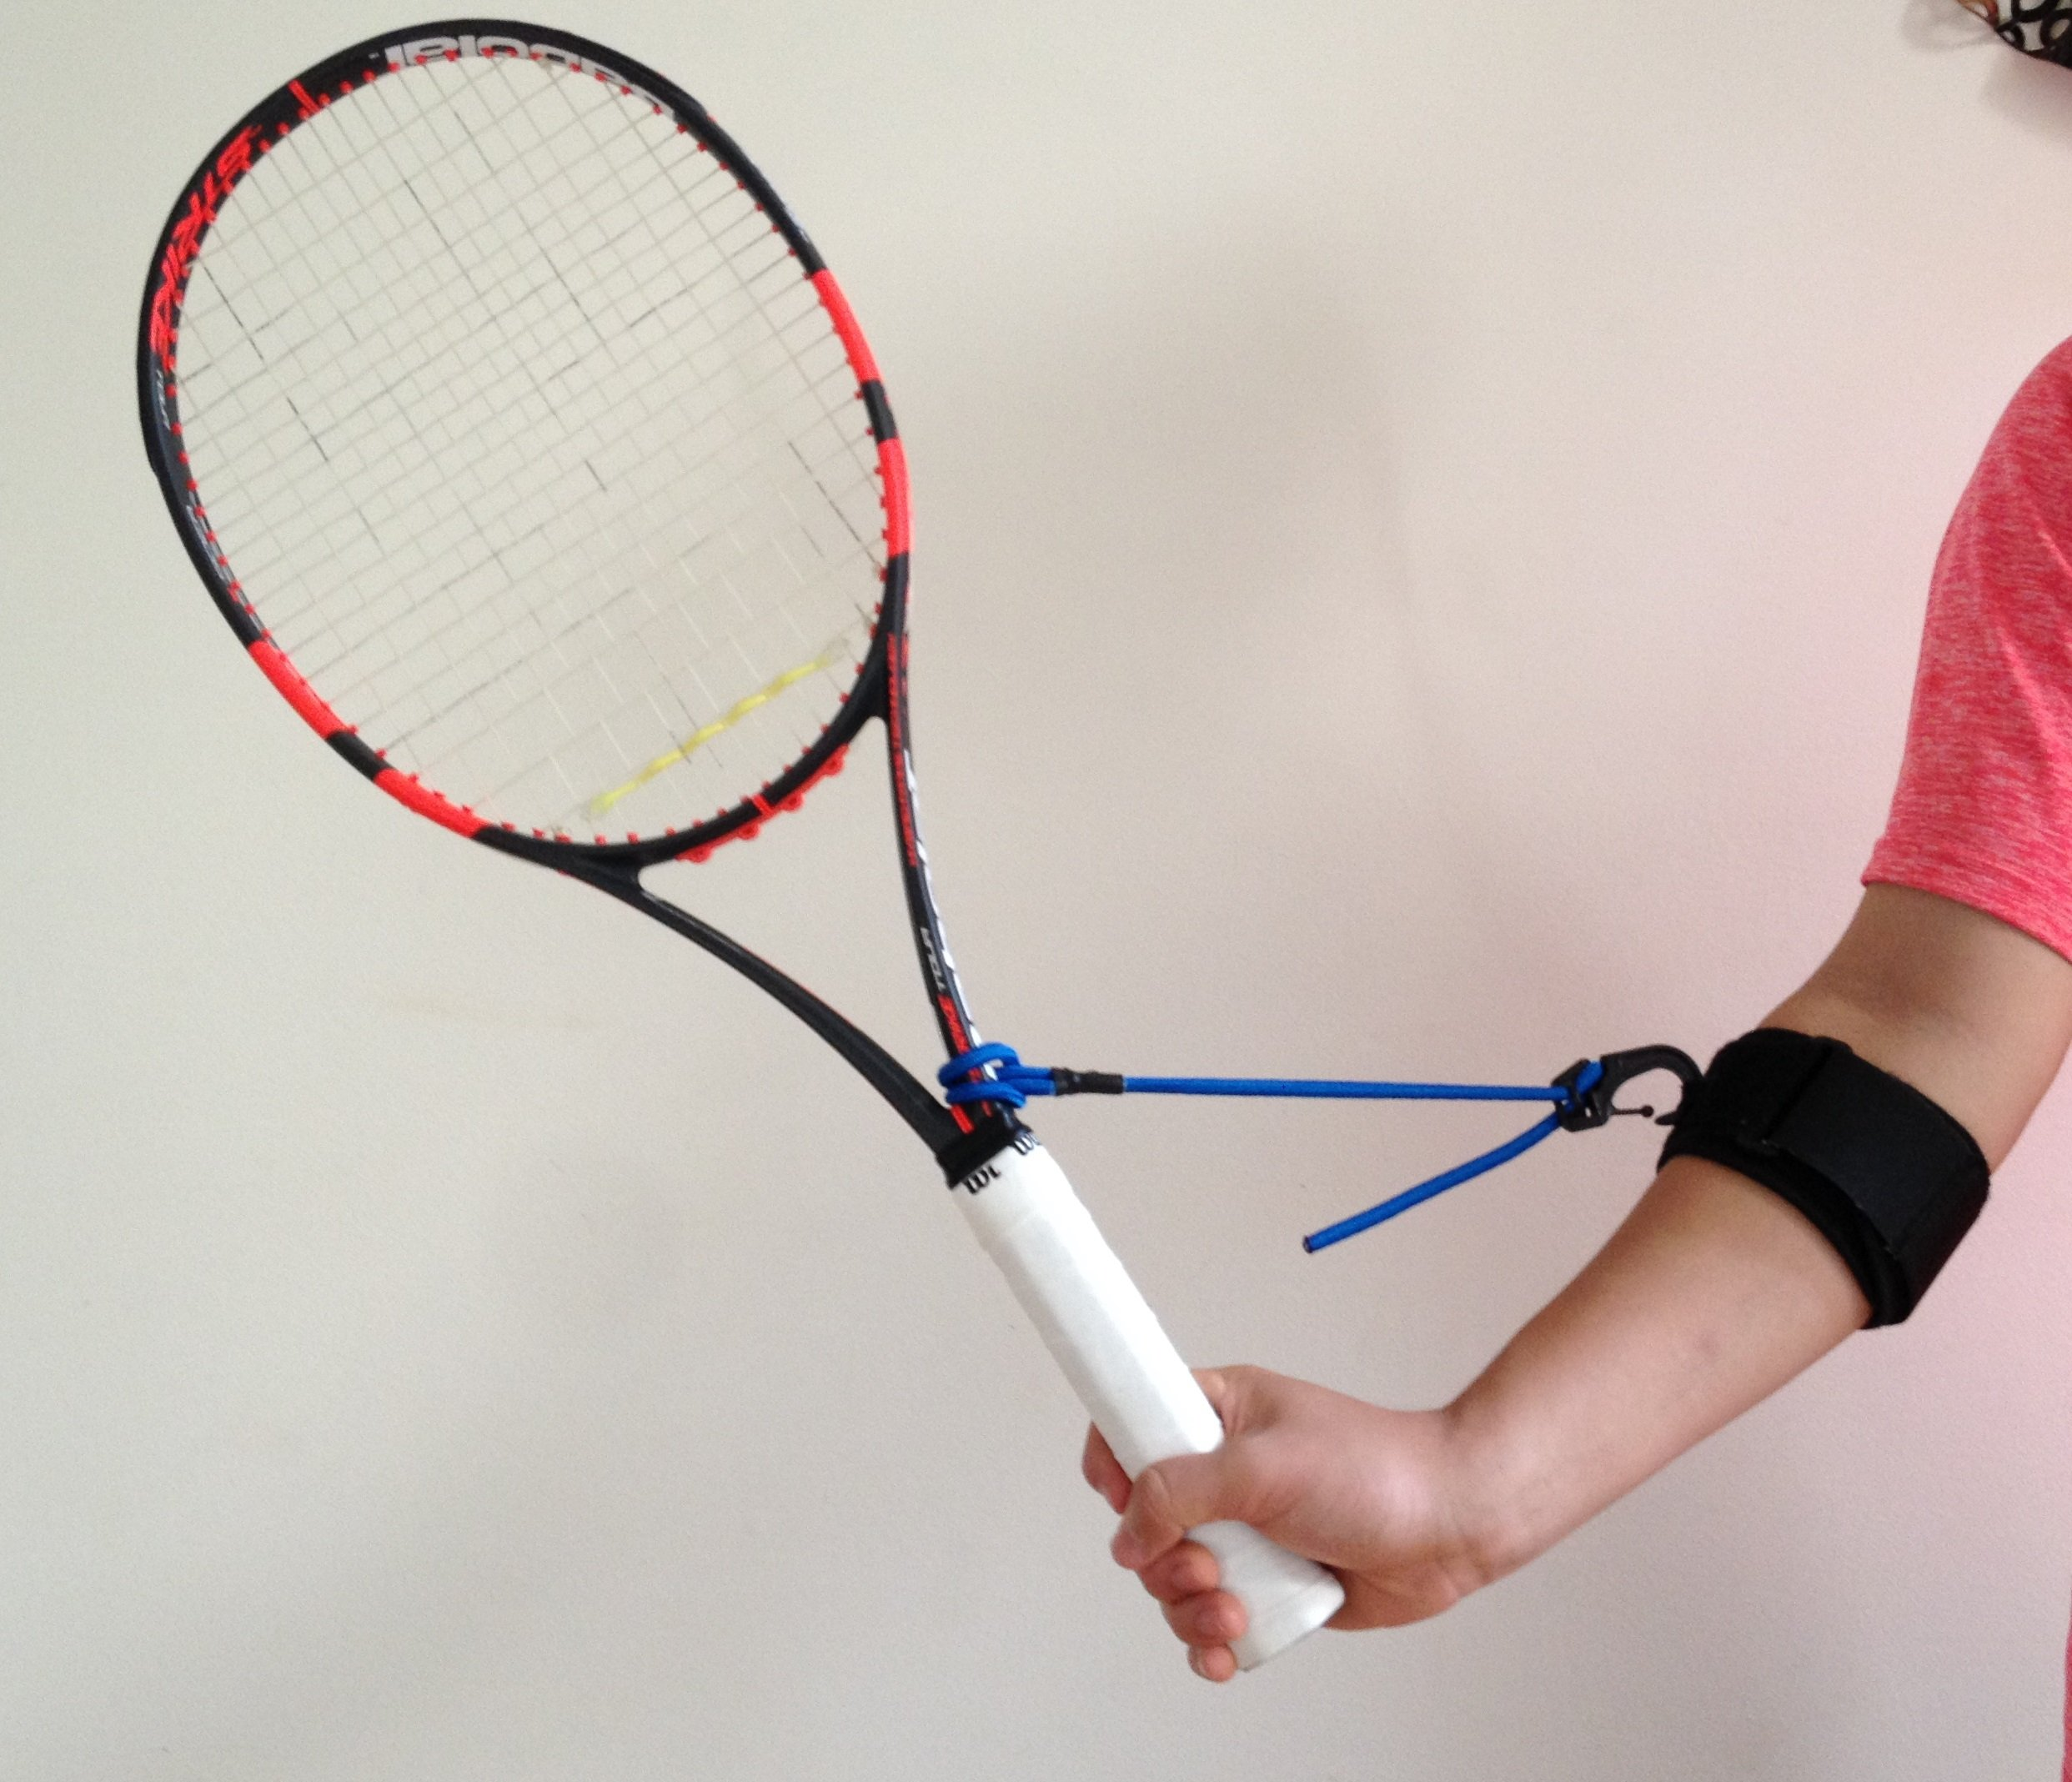 Tennis Swing Wrist Training Aid for Forehands, Backhands, Volleys and Serves - PermaWrist